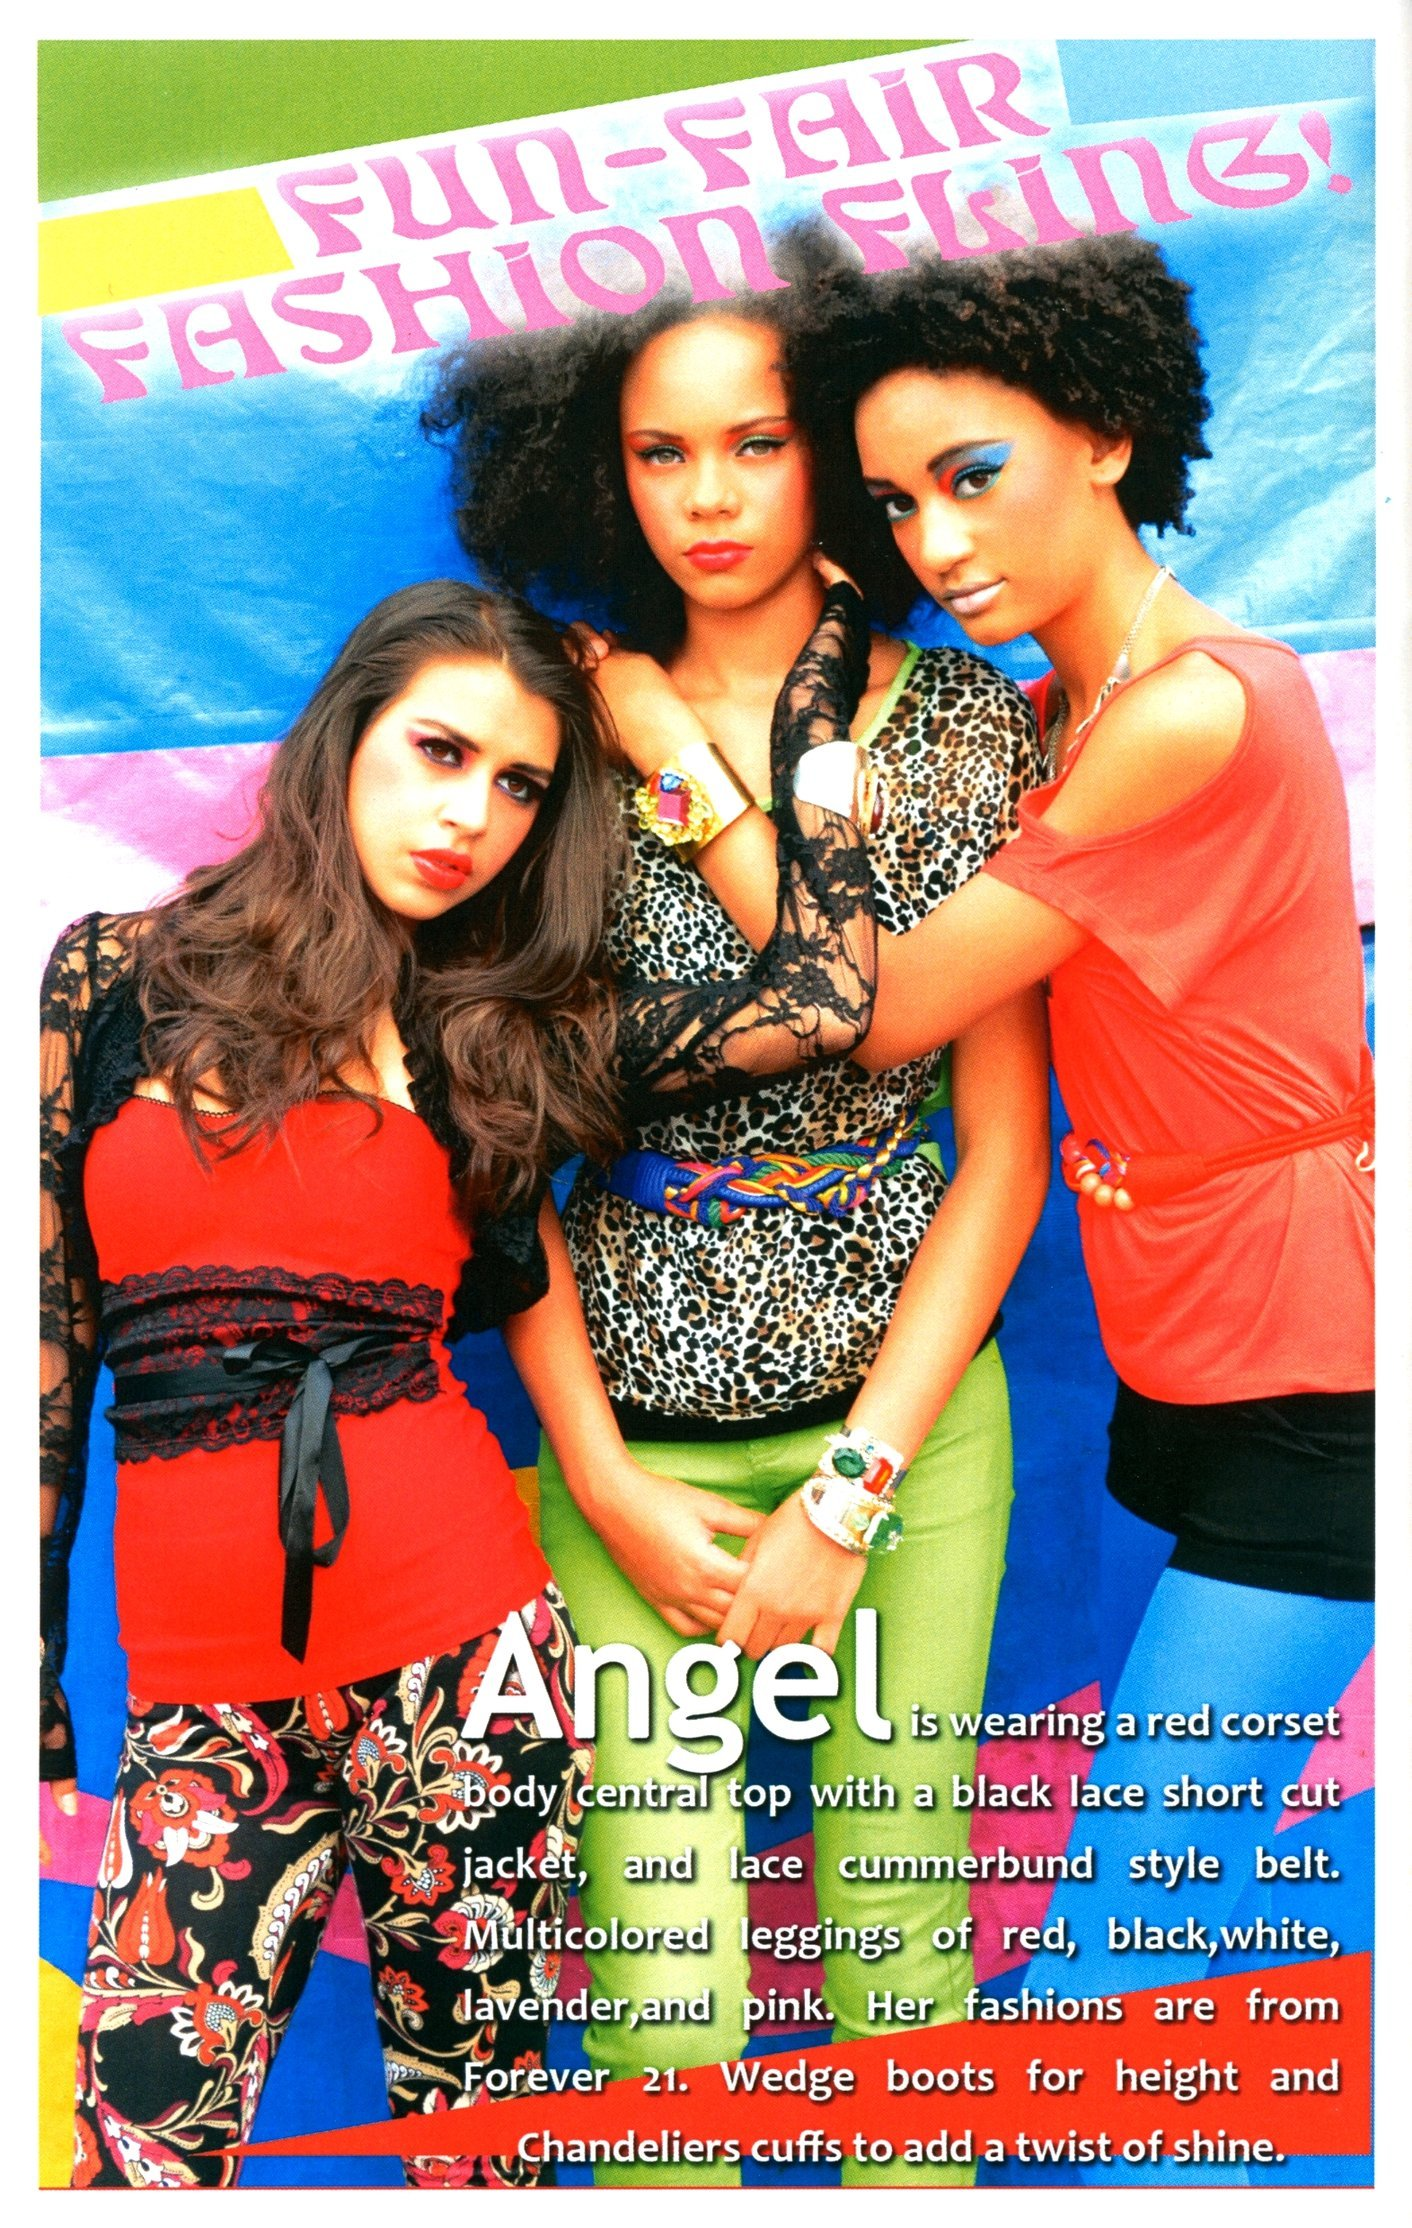 Models  ANGEL, ZHARIA, TYREE model for RED-ZONE magazine.